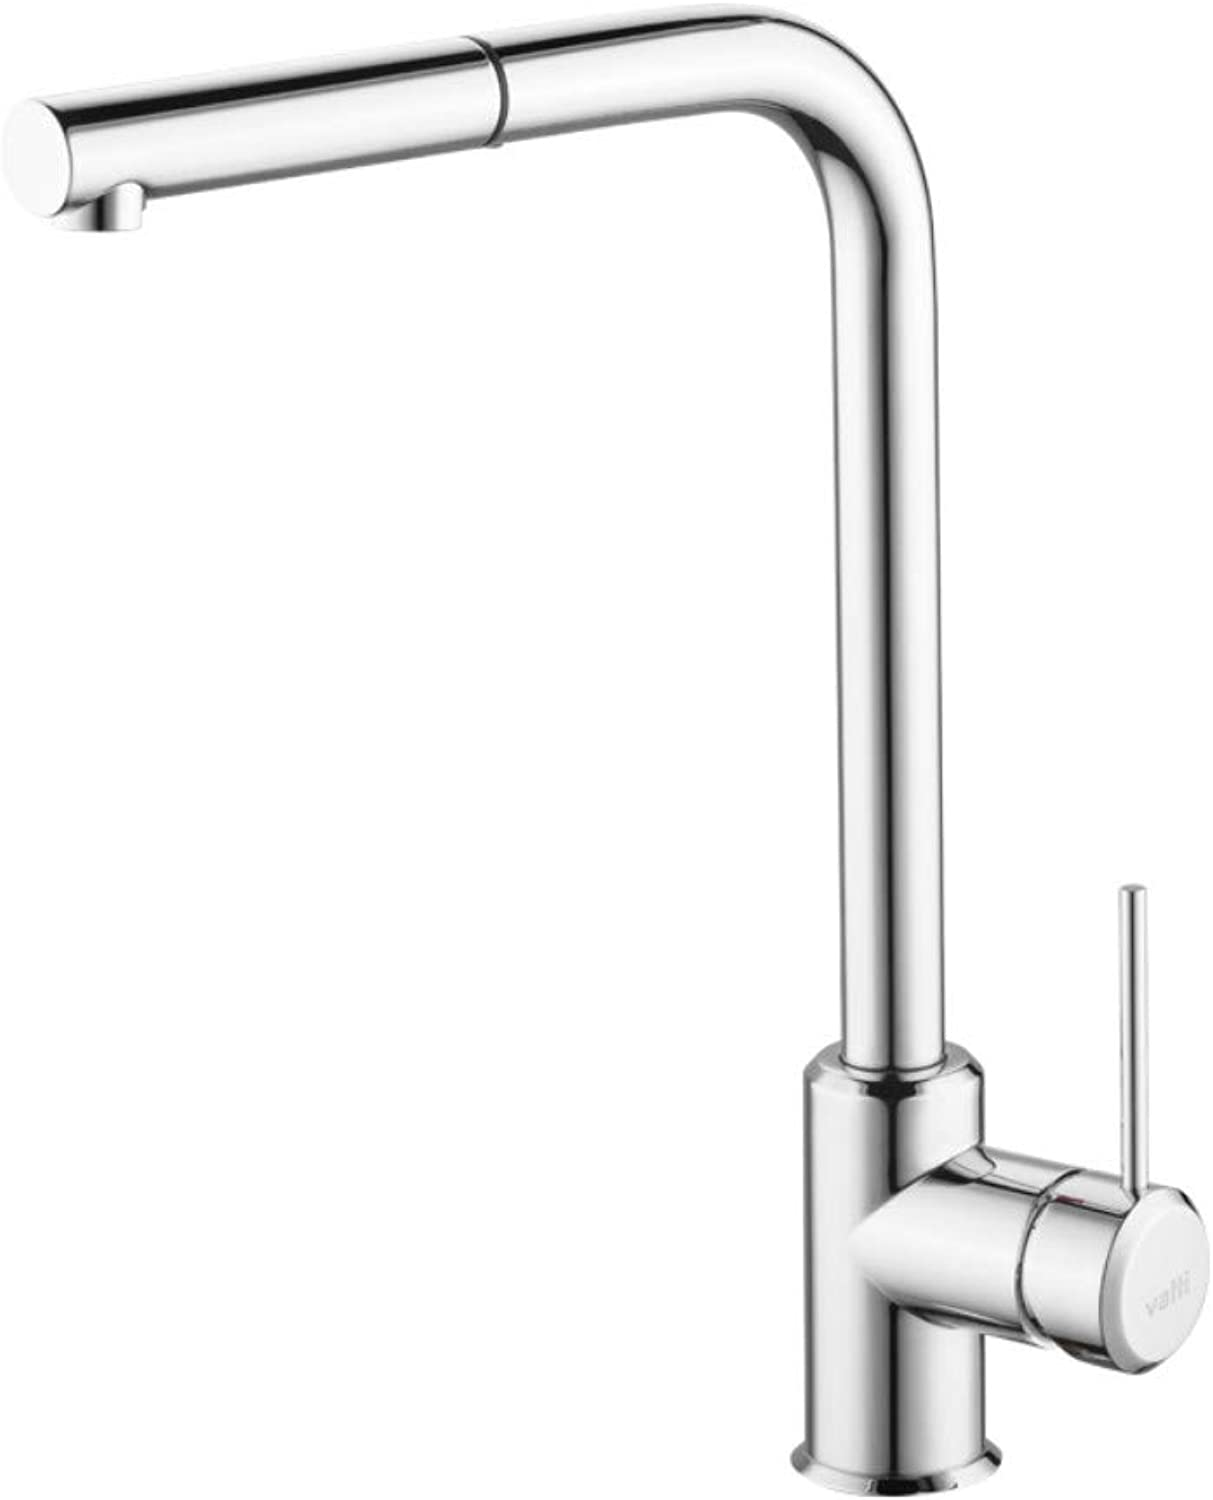 Faucet hot and cold sink faucet 360° free pull kitchen faucet seven-shaped shape Vientiane redation